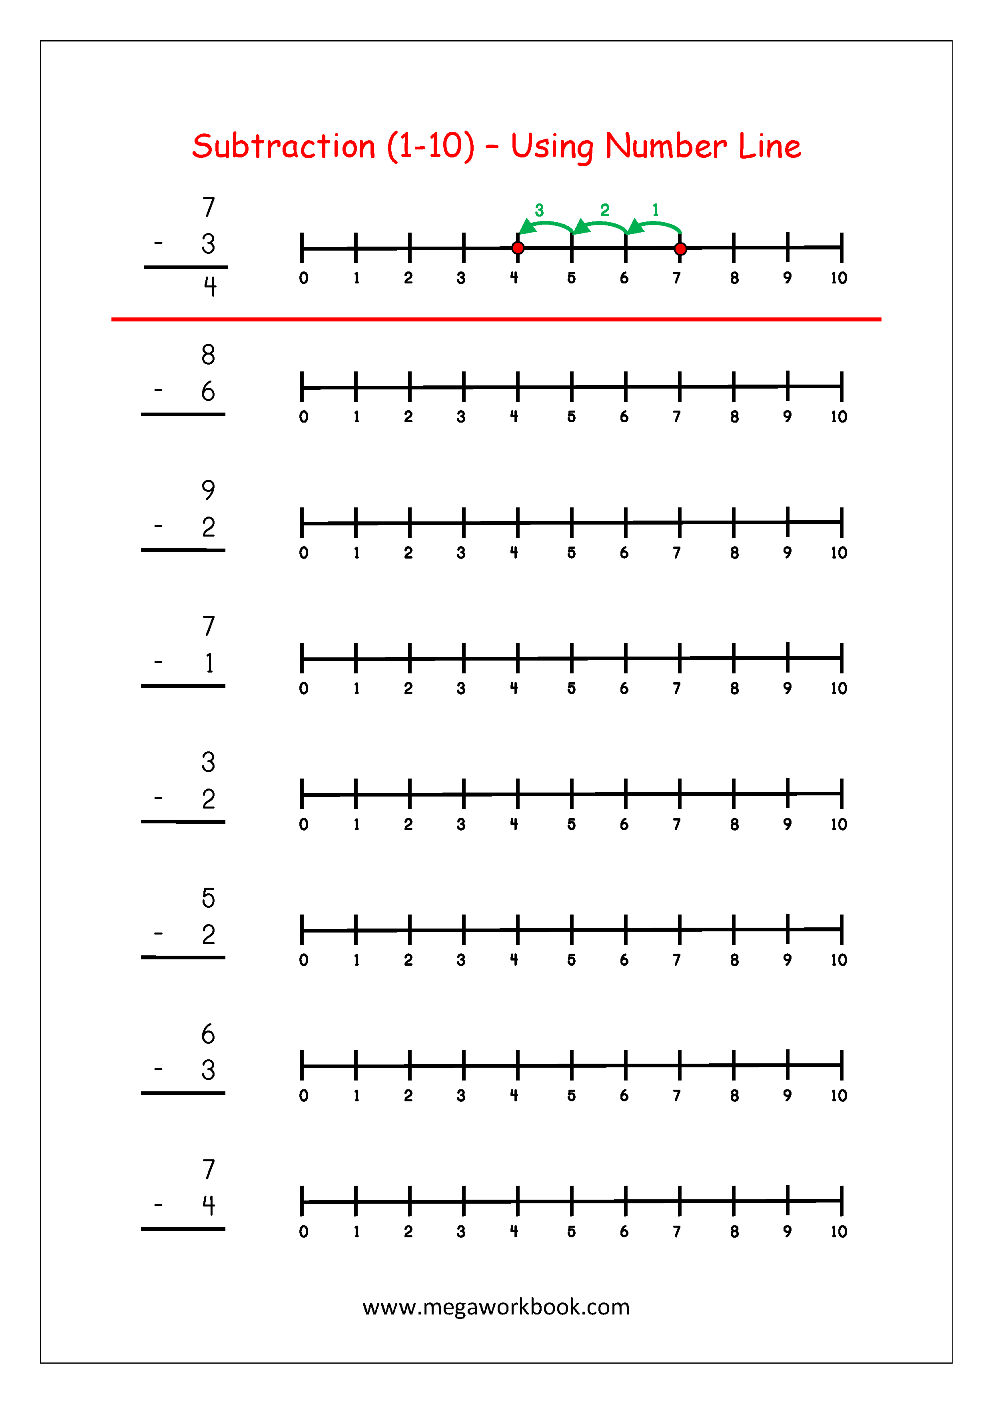 small resolution of Subtraction Worksheets - Subtraction With Pictures/Objects/Tally Marks To  Cross Out - Subtraction Using Number Line in 2020   Kindergarten worksheets  free printables